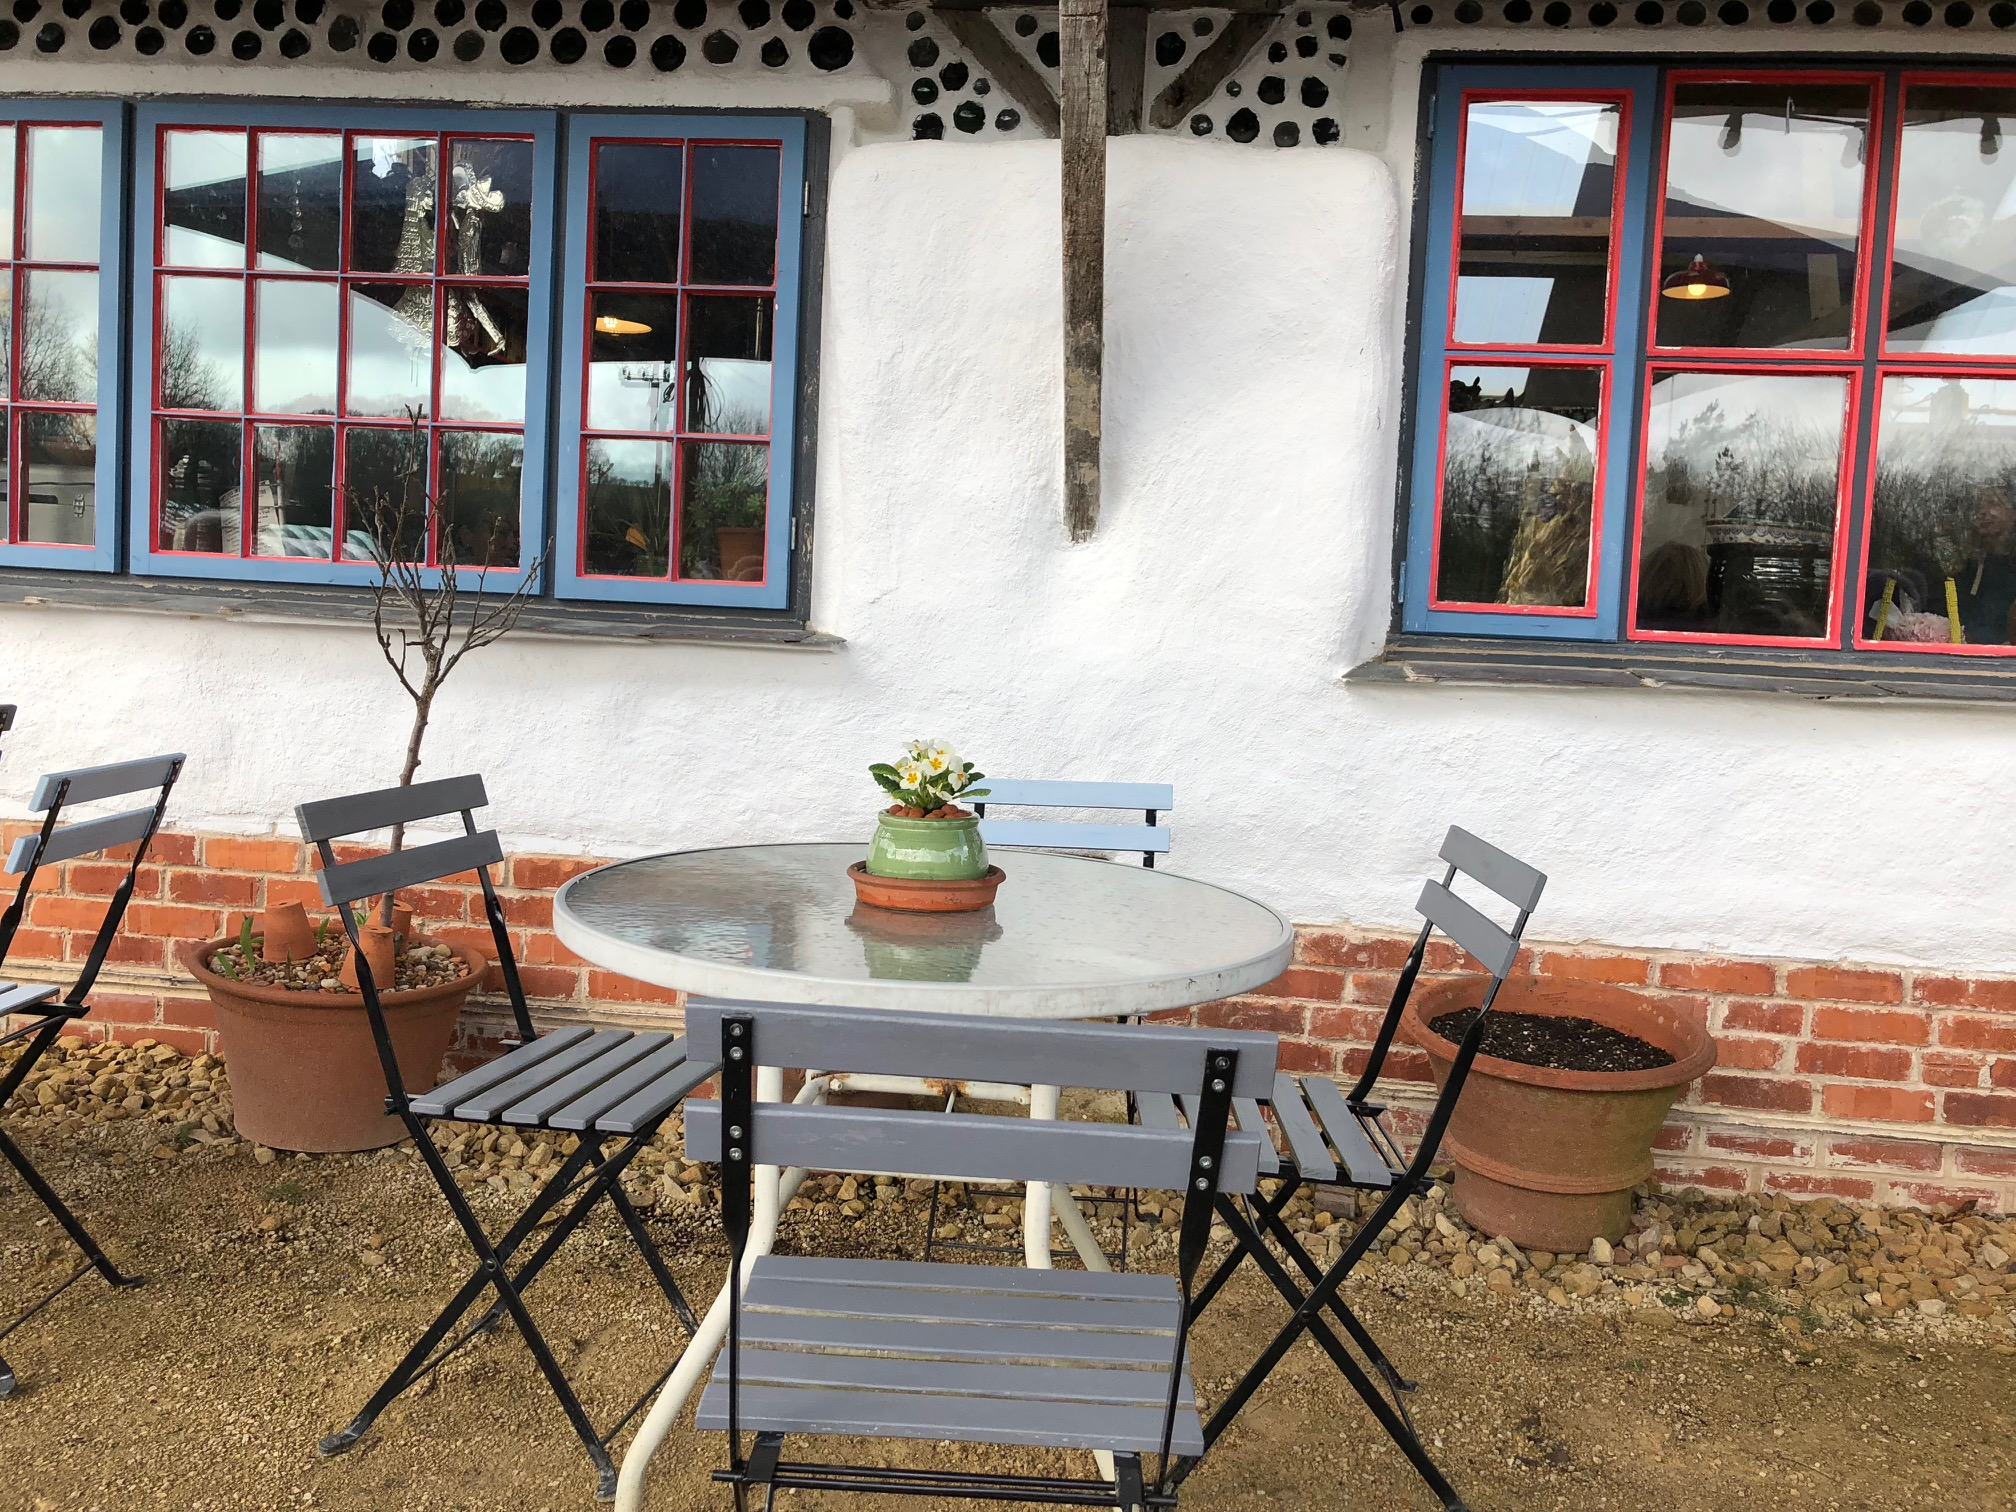 Hayles Fruit Farm Tea Room